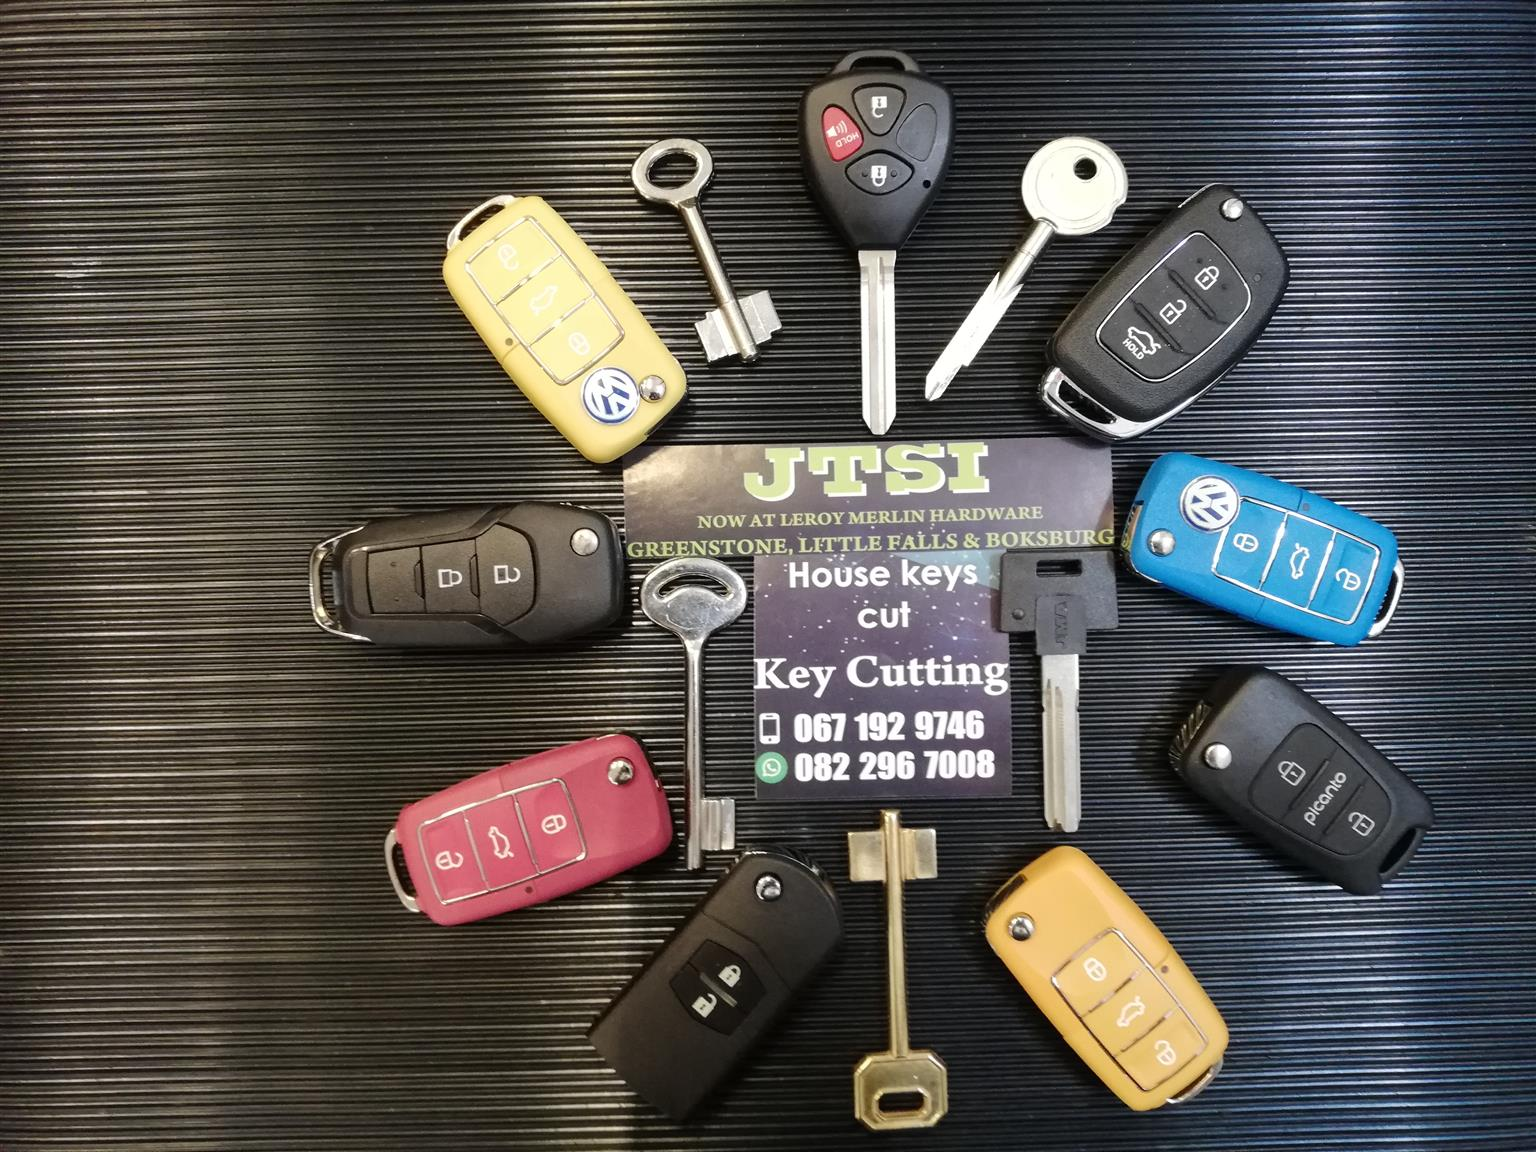 Spare keys and caseings for cars